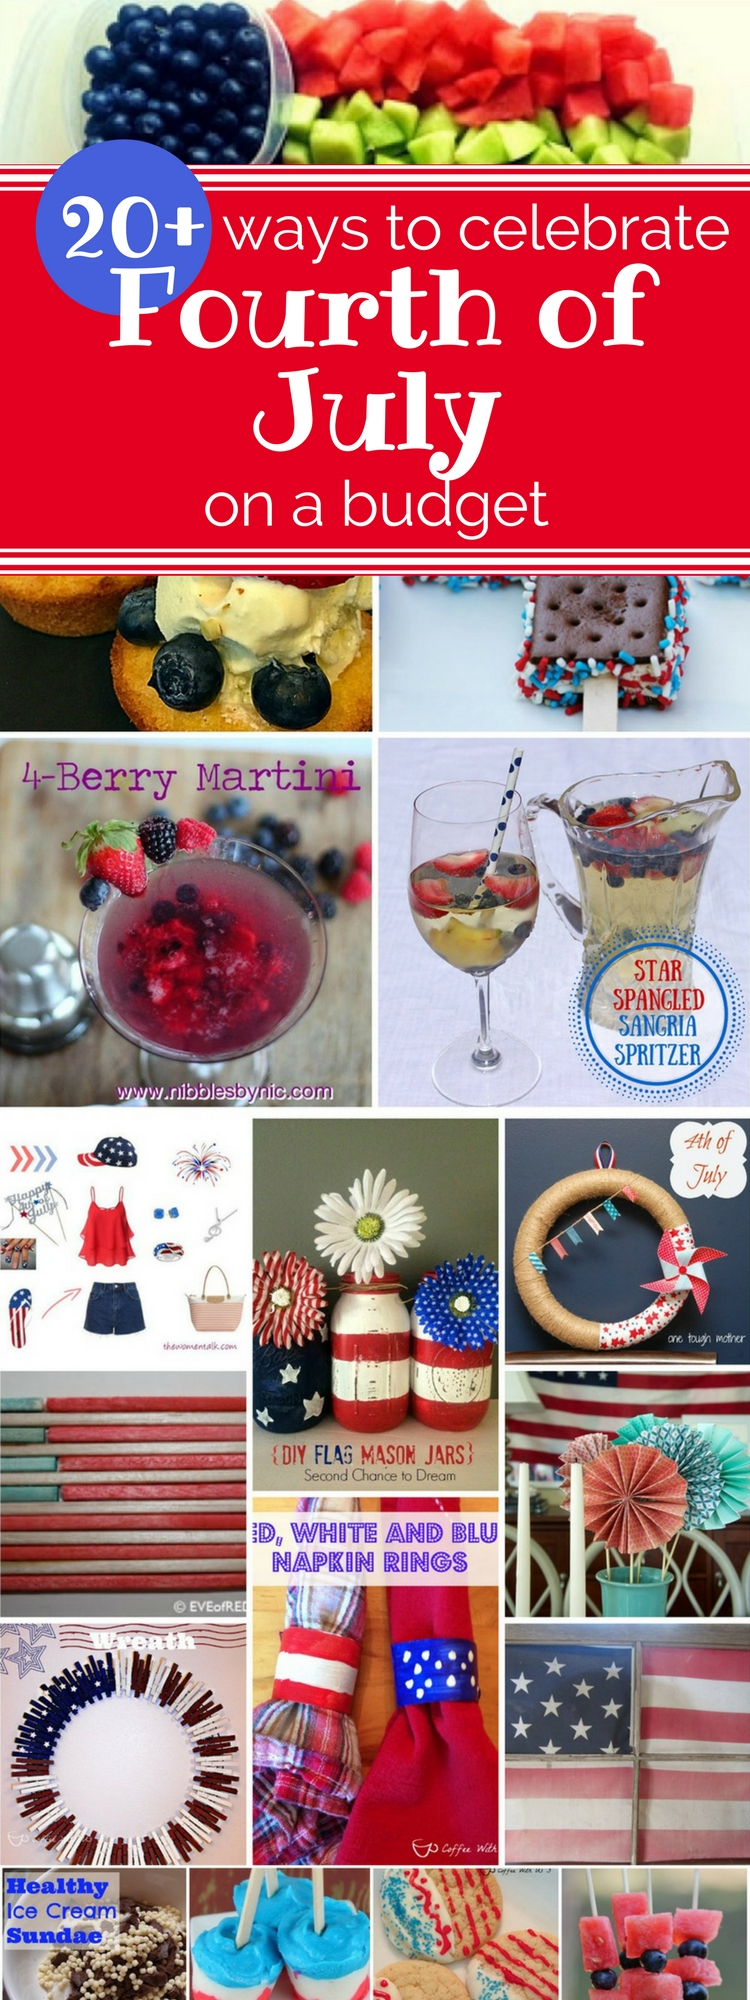 20 + ways to celebrate 4th of july on a budget Pinterest